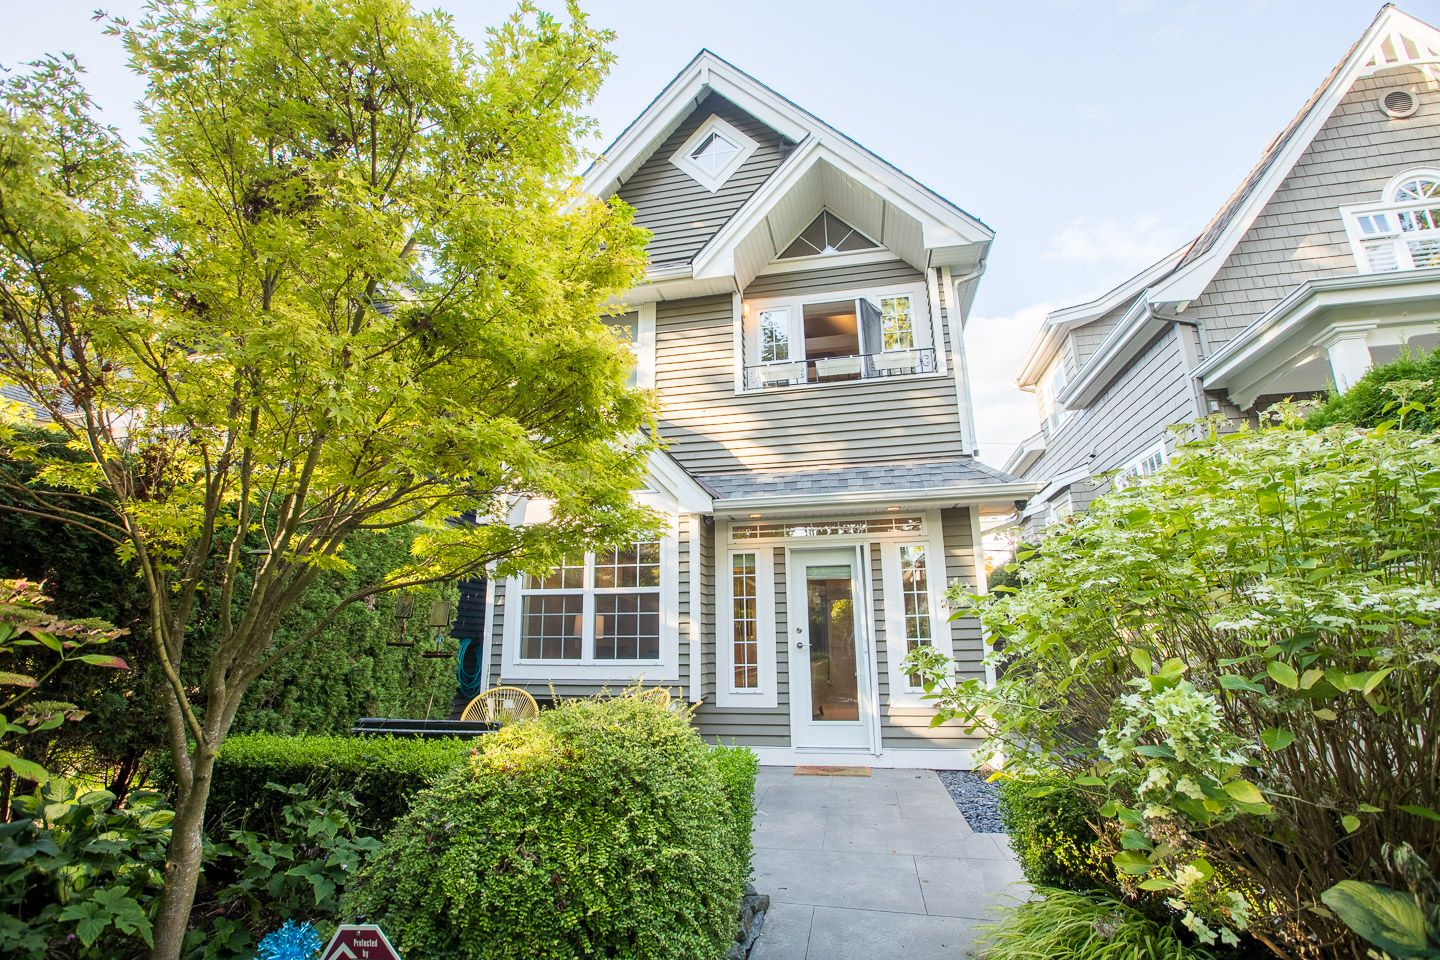 Photo 19: Photos: 2267 WEST 13TH AV in VANCOUVER: Kitsilano 1/2 Duplex for sale (Vancouver West)  : MLS®# R2407976